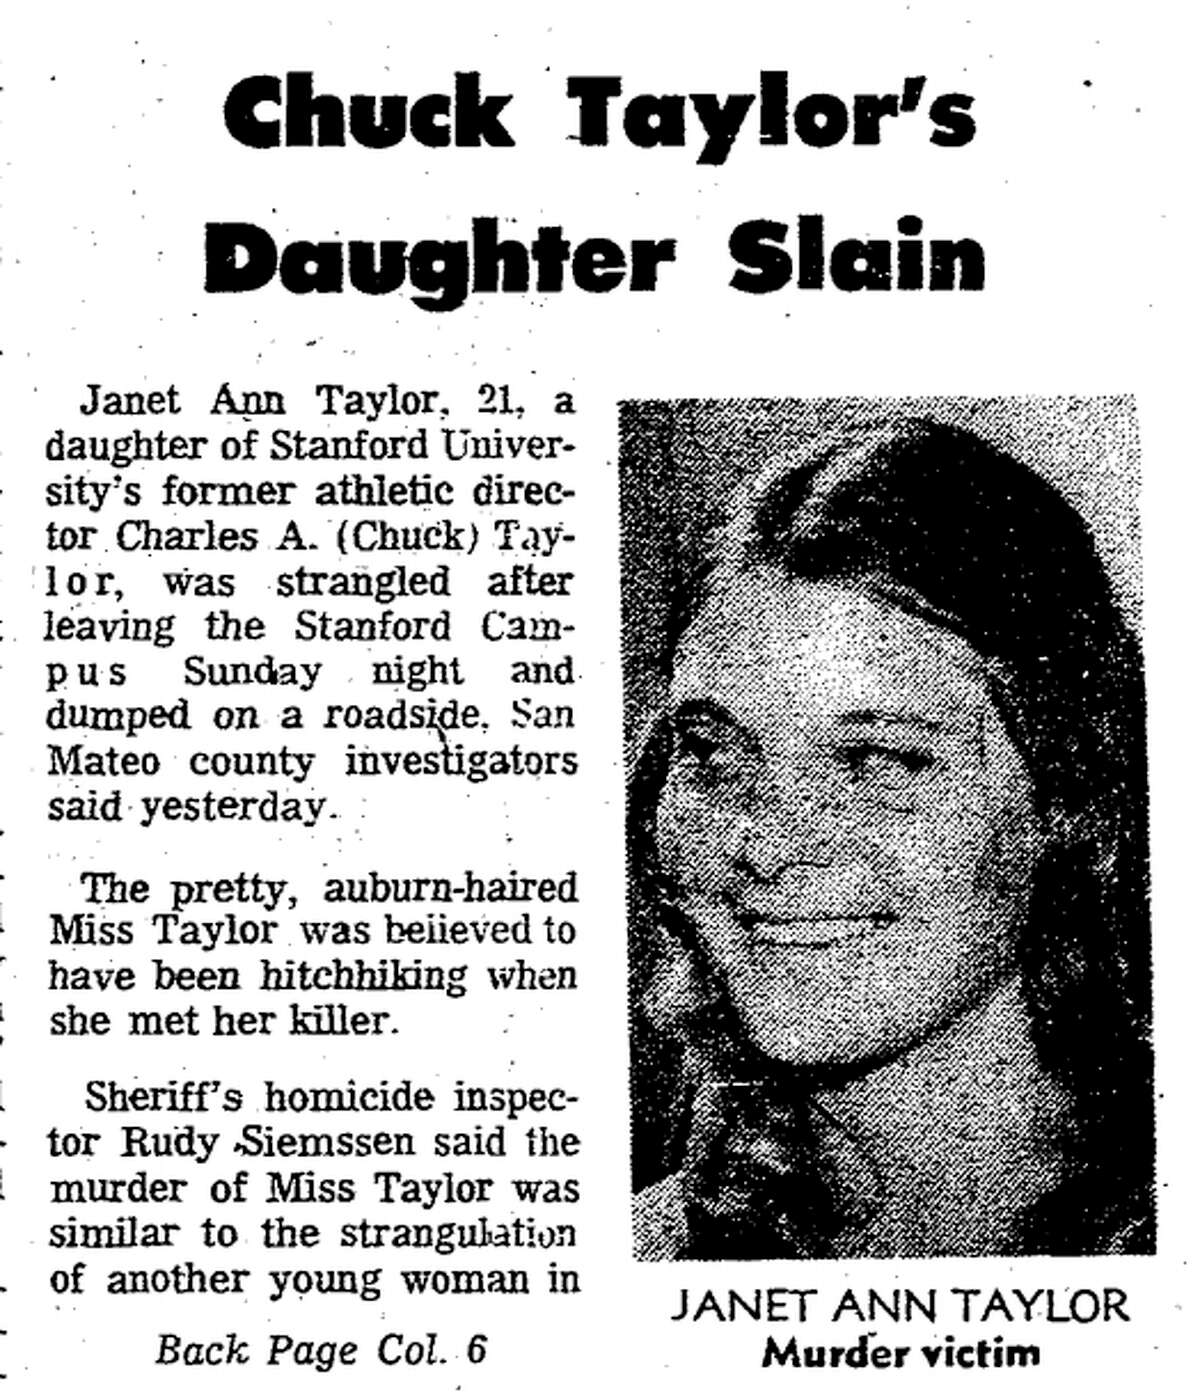 The front page of the San Francisco Chronicle after the 1974 murder of Janet Ann Taylor.